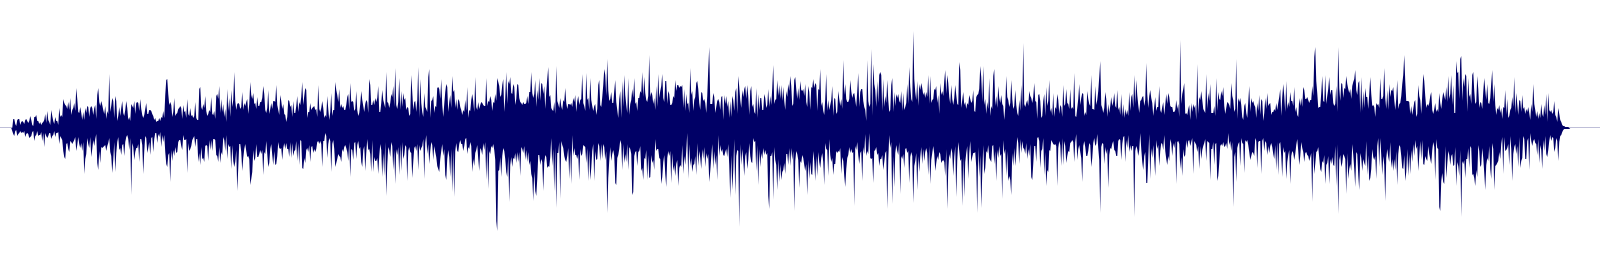 waveform of track #90281